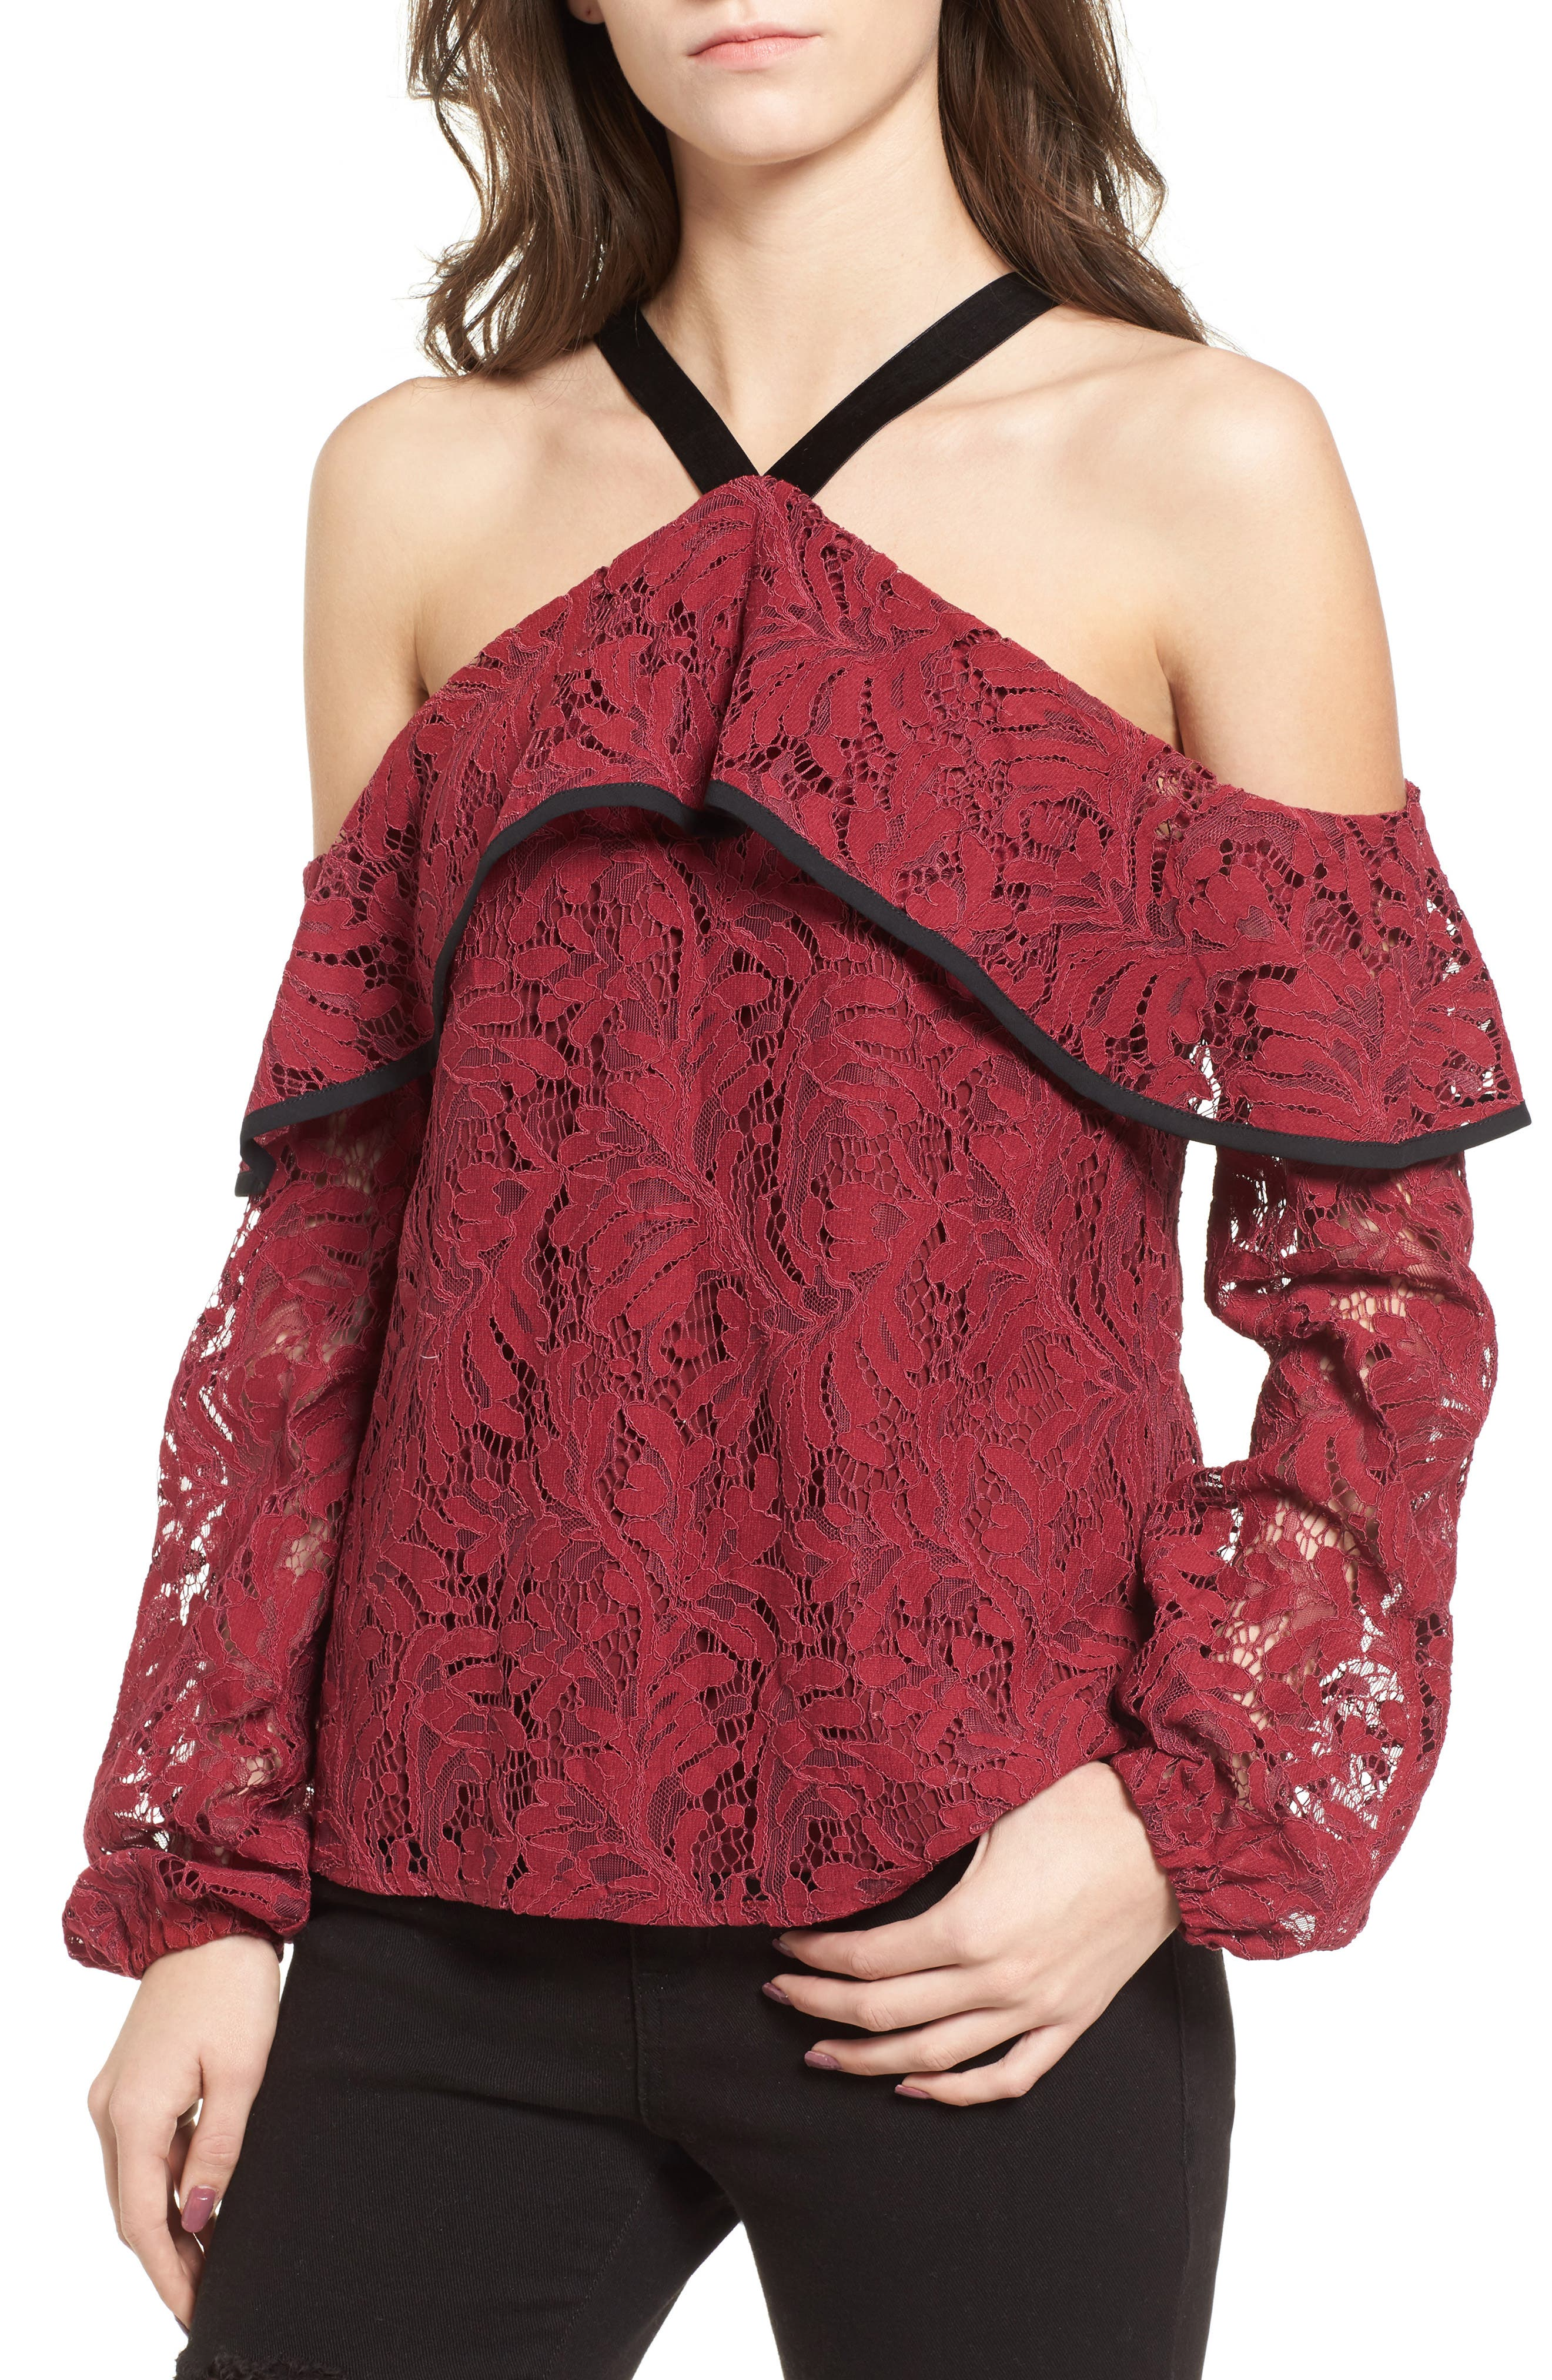 Helena Lace Top,                         Main,                         color, Burgundy